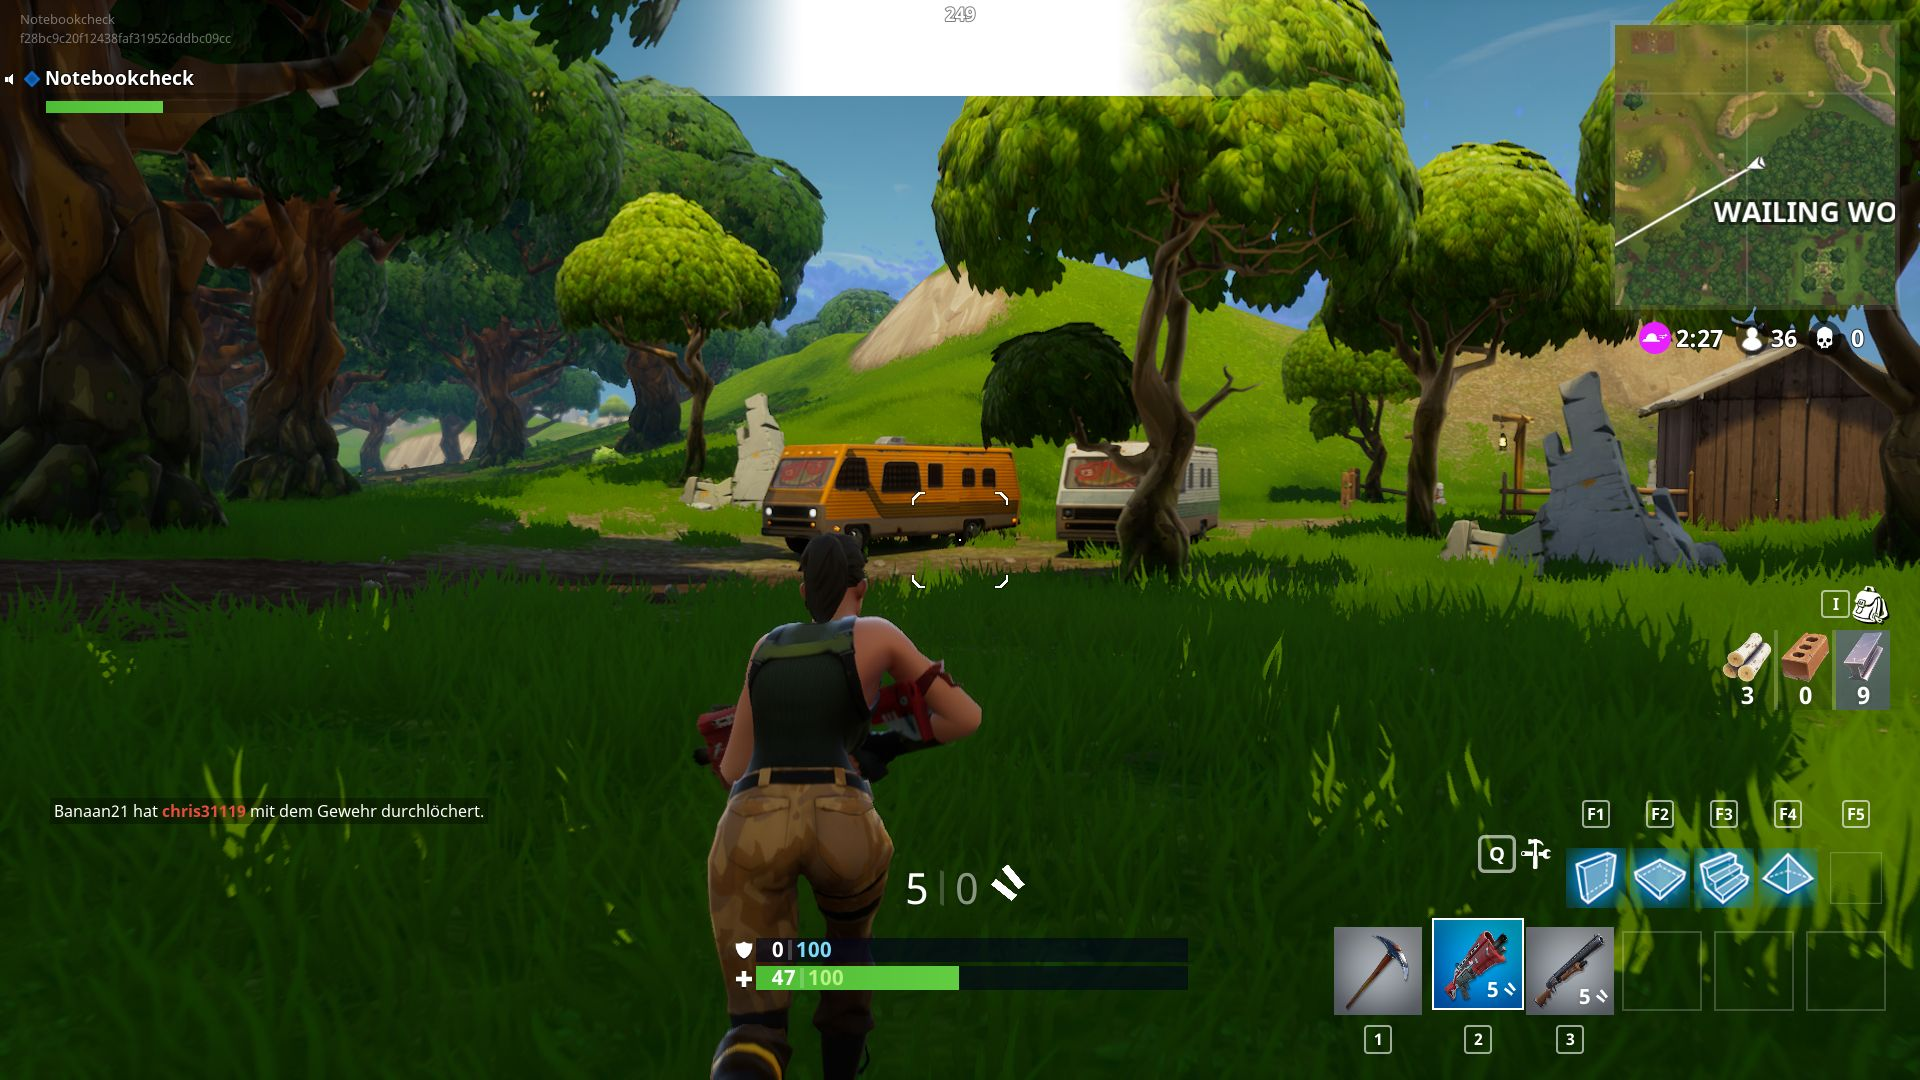 Fortnite Notebook und Desktop Benchmarks - Notebookcheck.com Tests